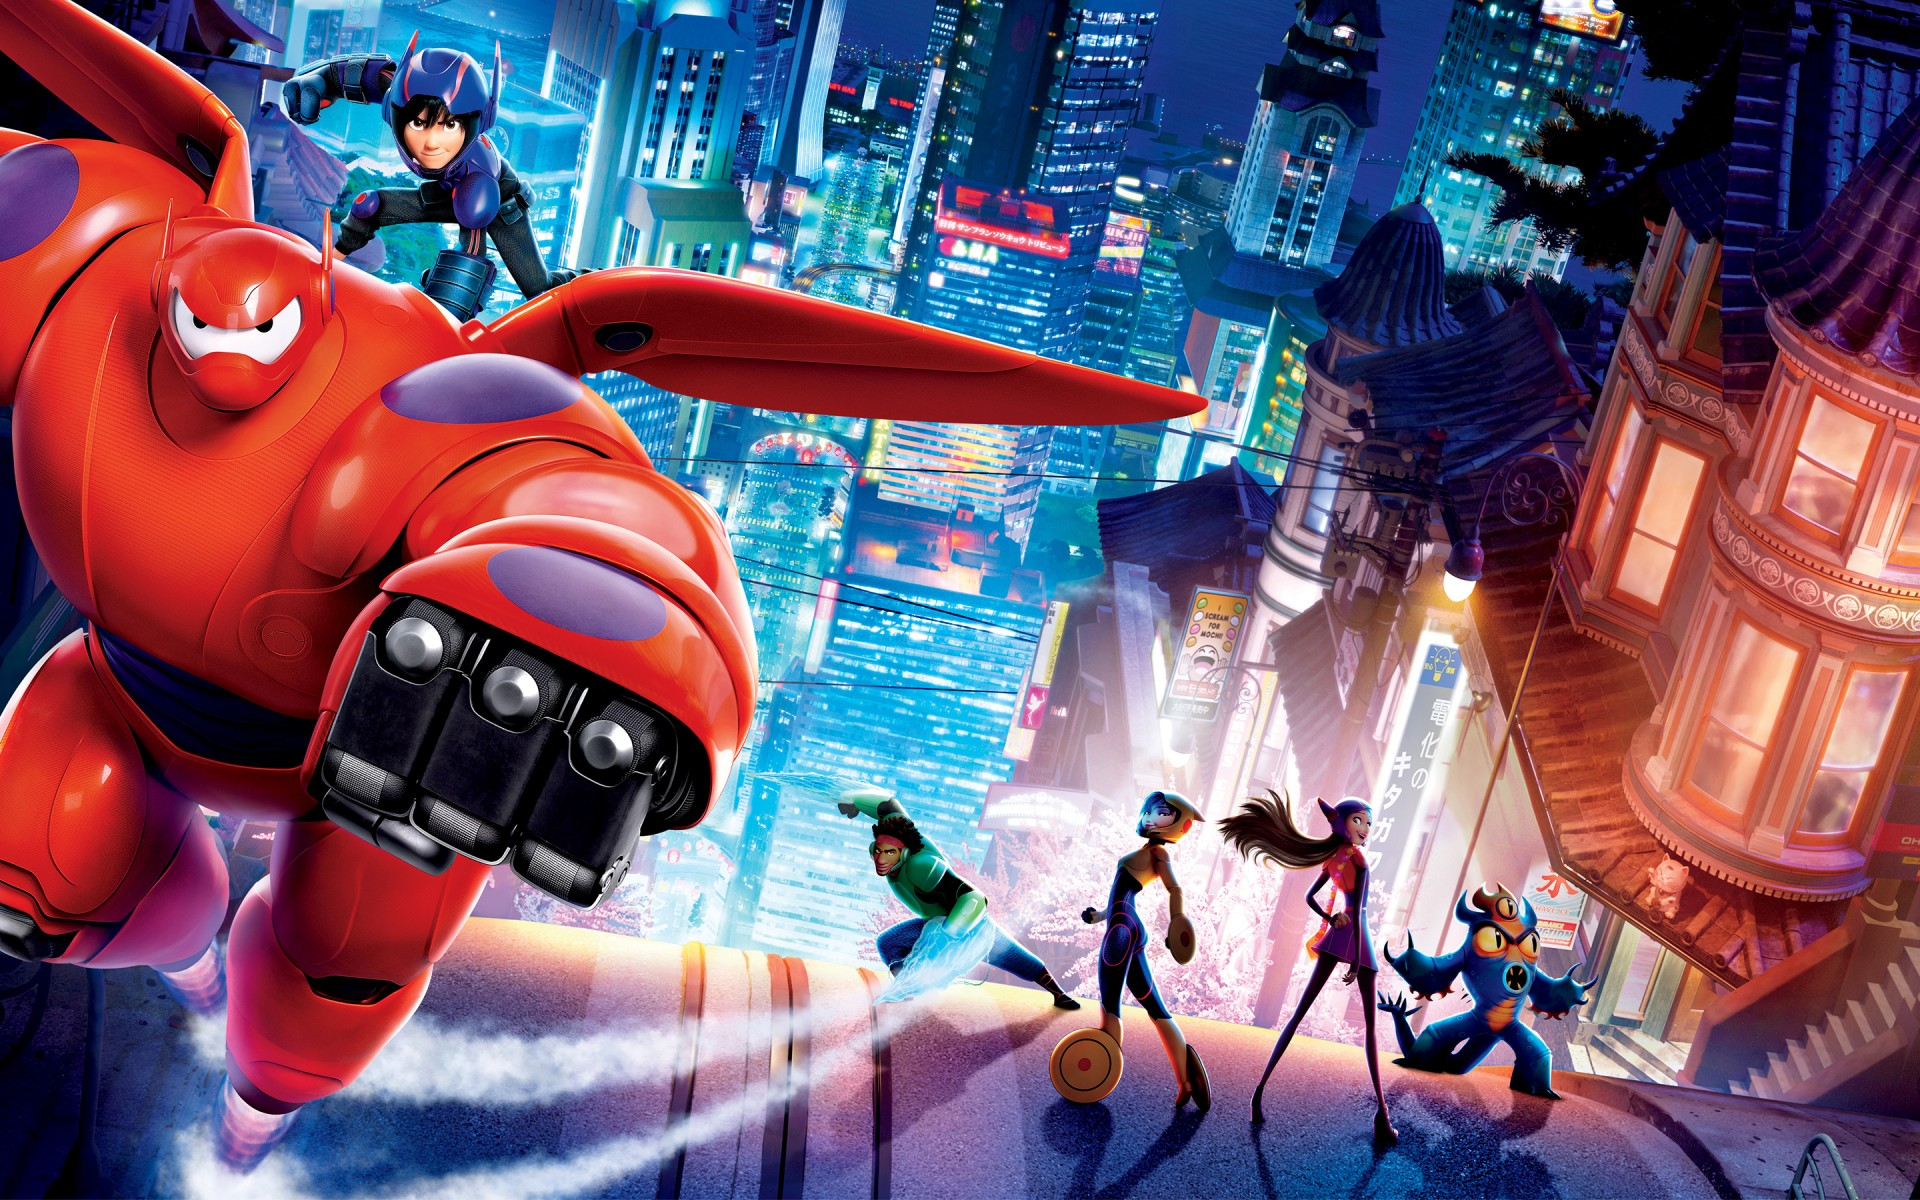 Fall Out Boy Laptop Wallpaper 2014 Big Hero 6 Wallpapers Hd Wallpapers Id 14016